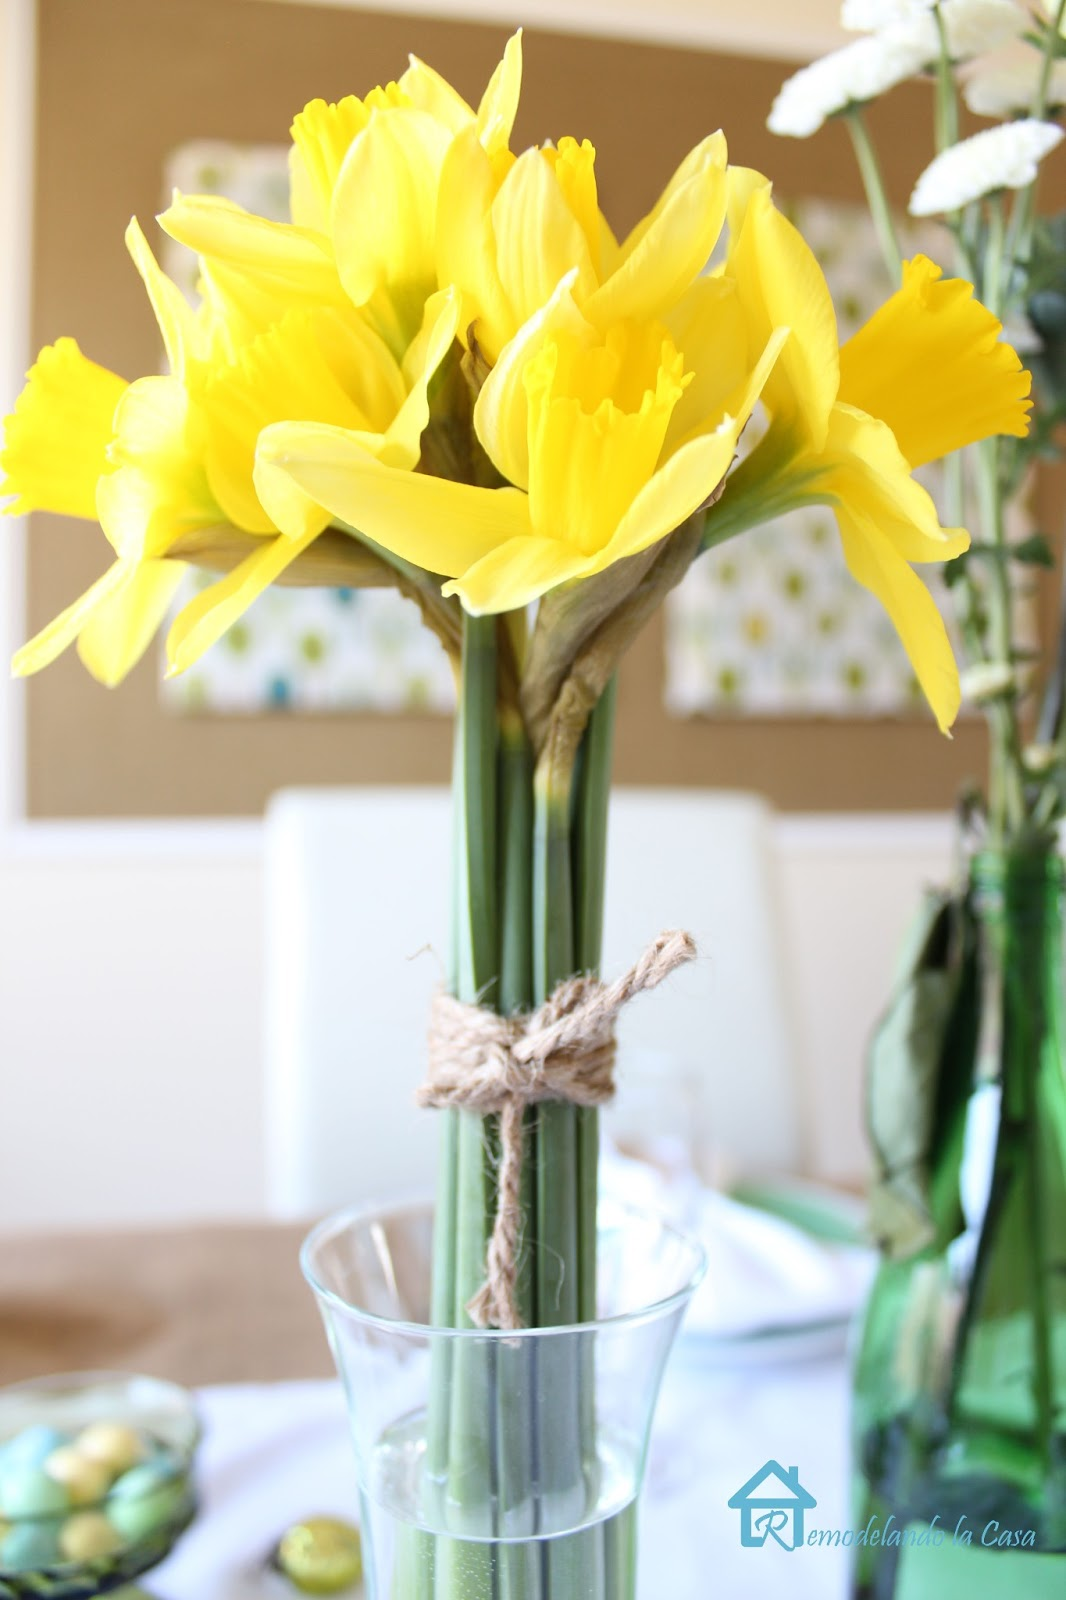 yellow lilies adorning an Easter table